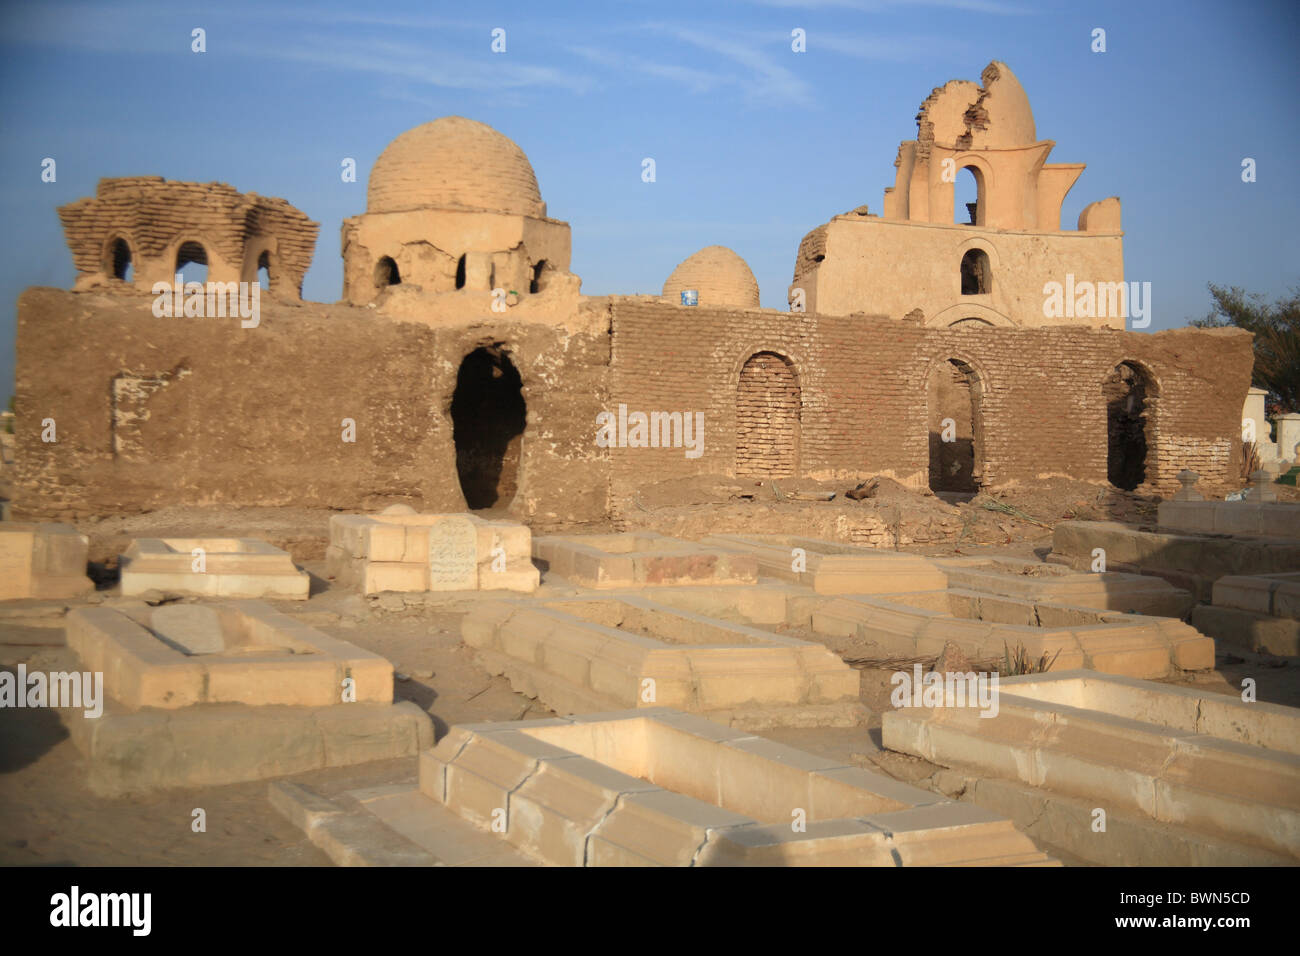 egypt north africa fatimid cemetery mausoleum aswan travel trip